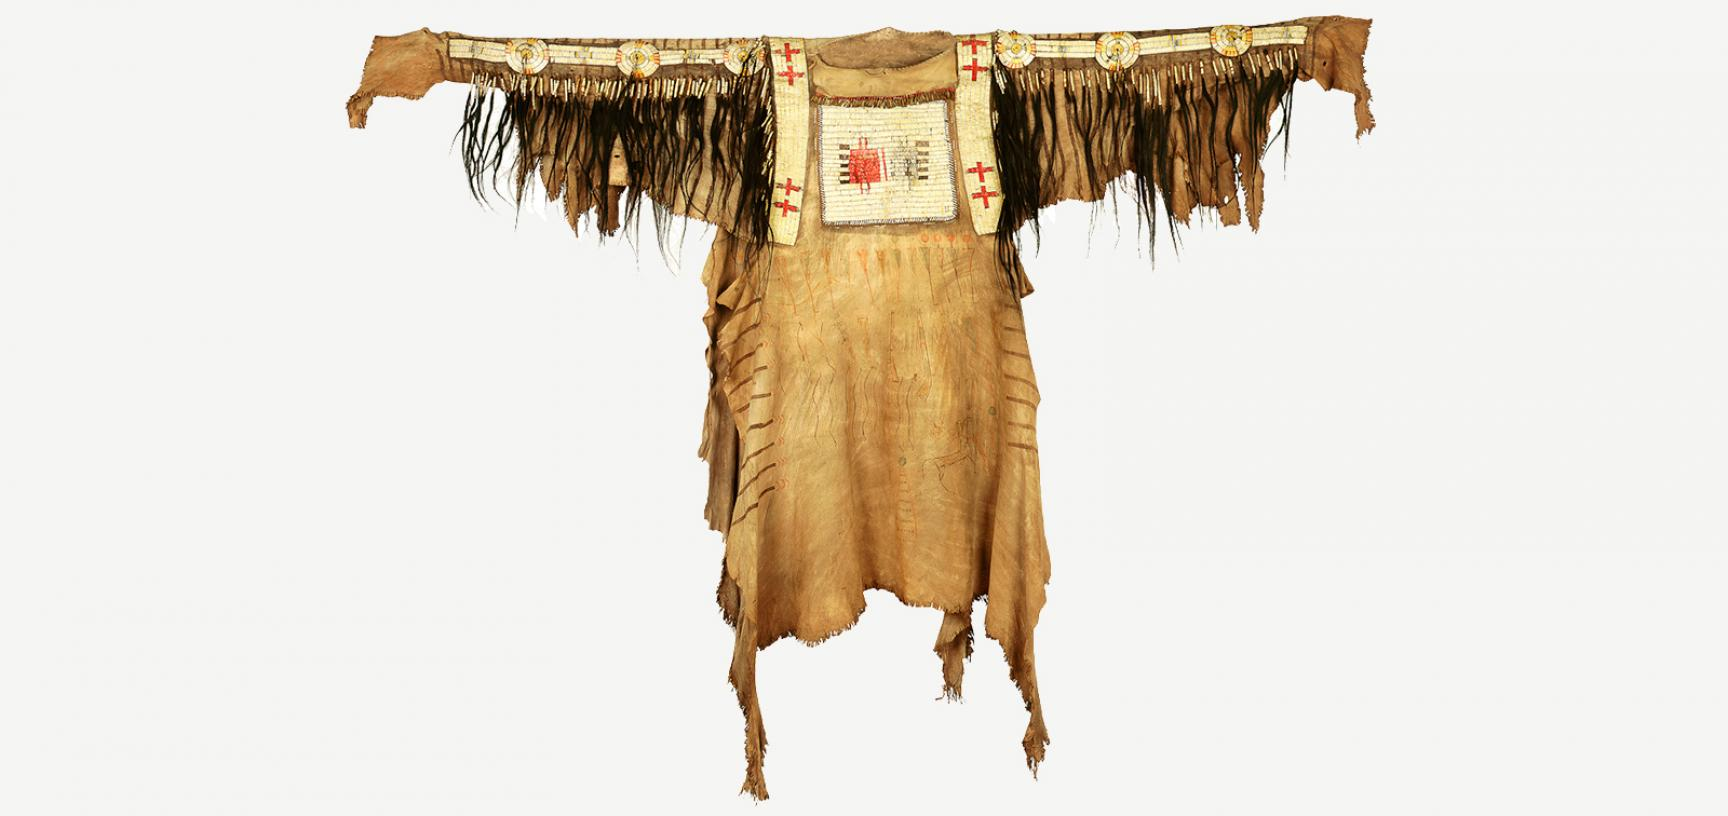 Blackfoot hide shirt (1893.67.1) after conservation